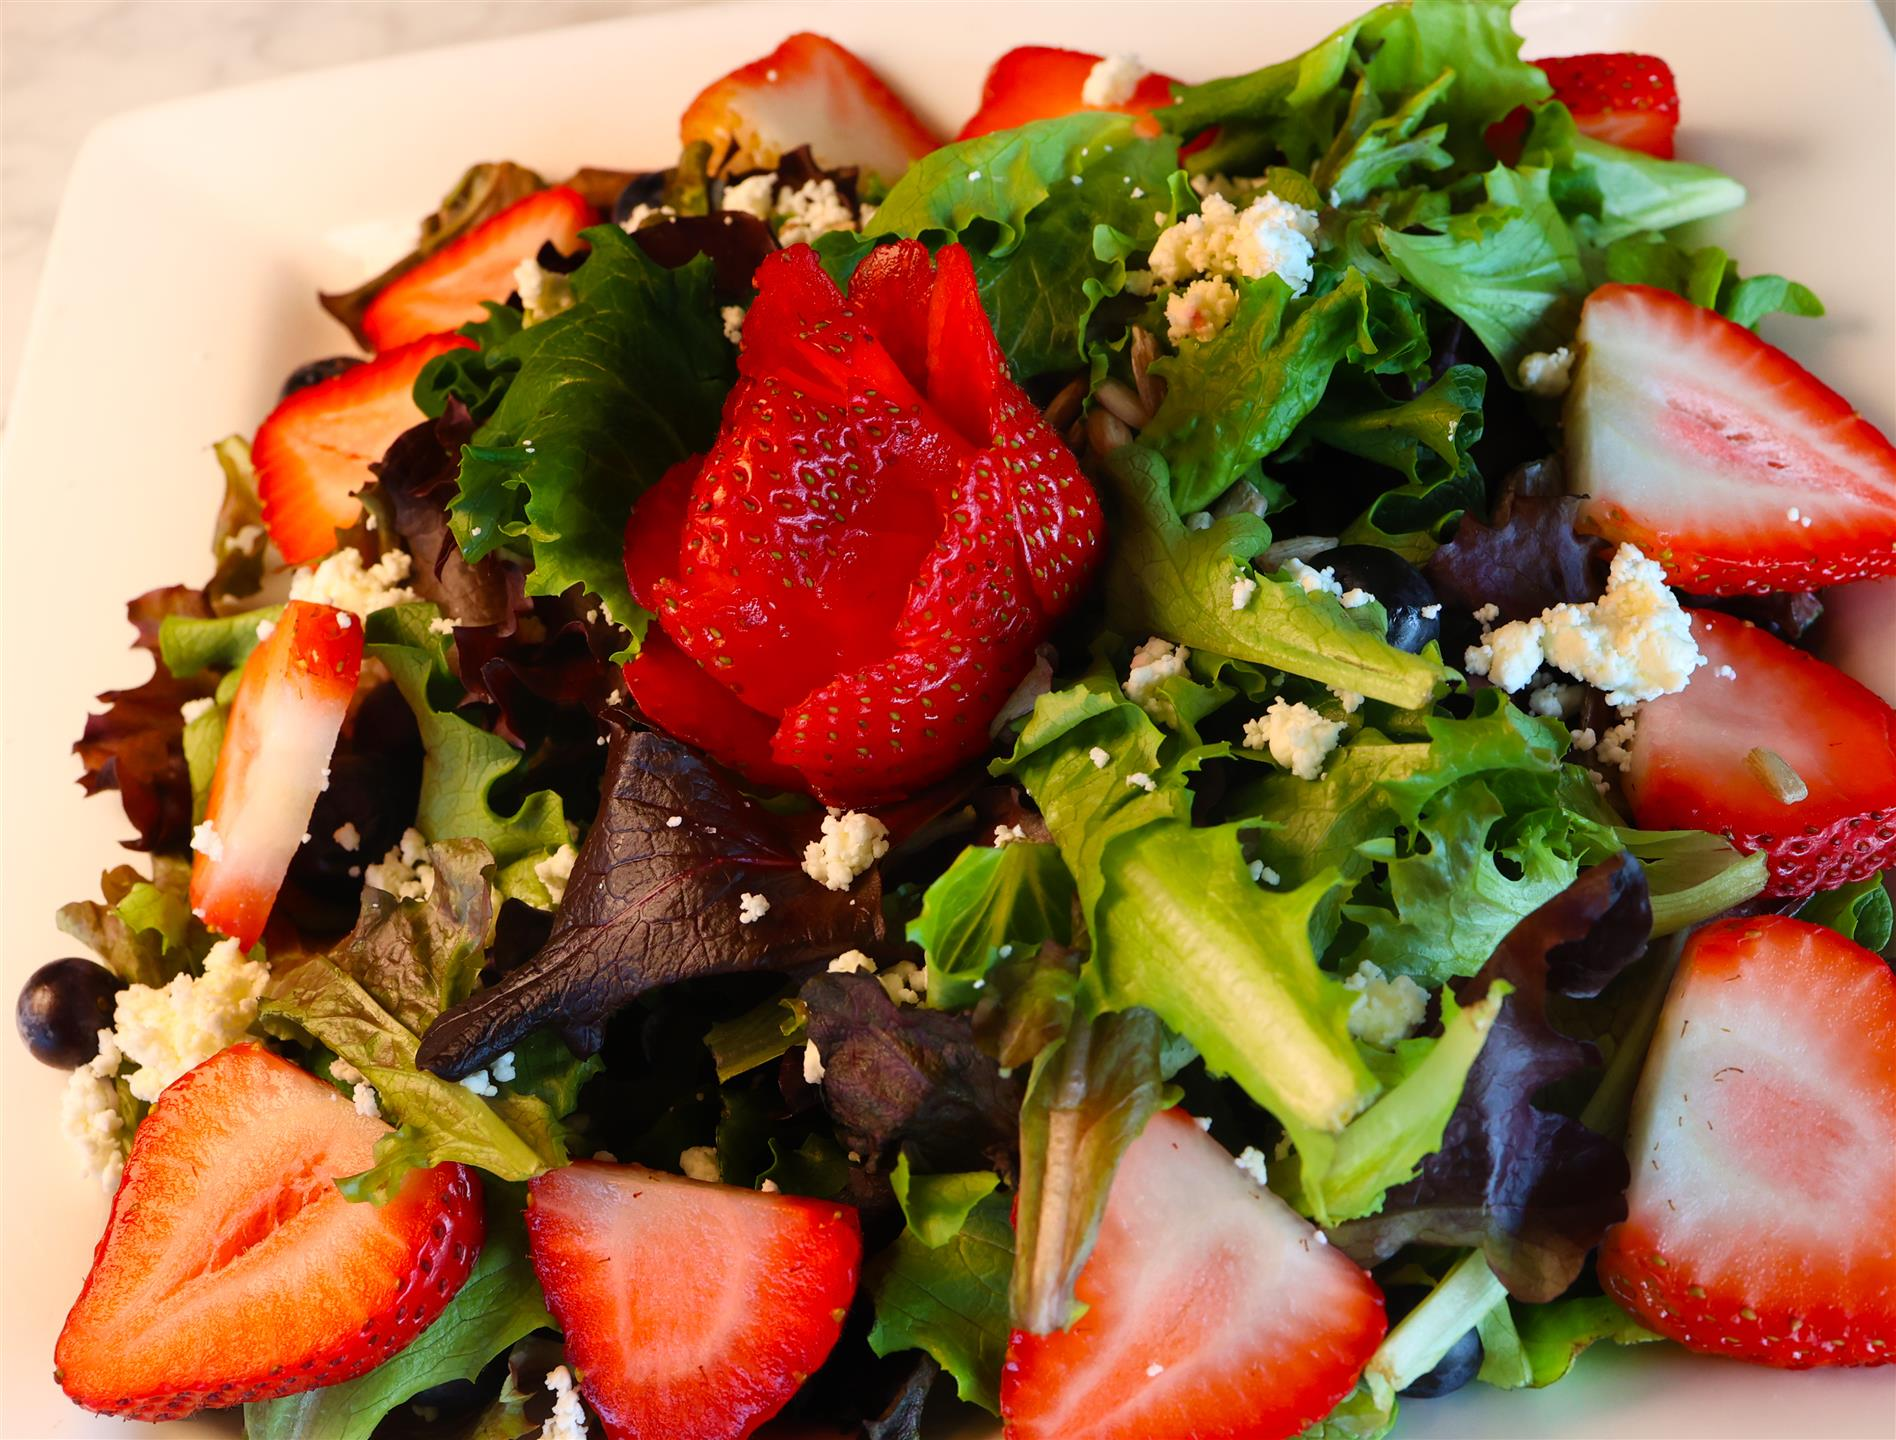 Berry Crunch salad with Mixed greens, strawberry, goat cheese, sunflower Seeds, served with Raspberry vinaigrette